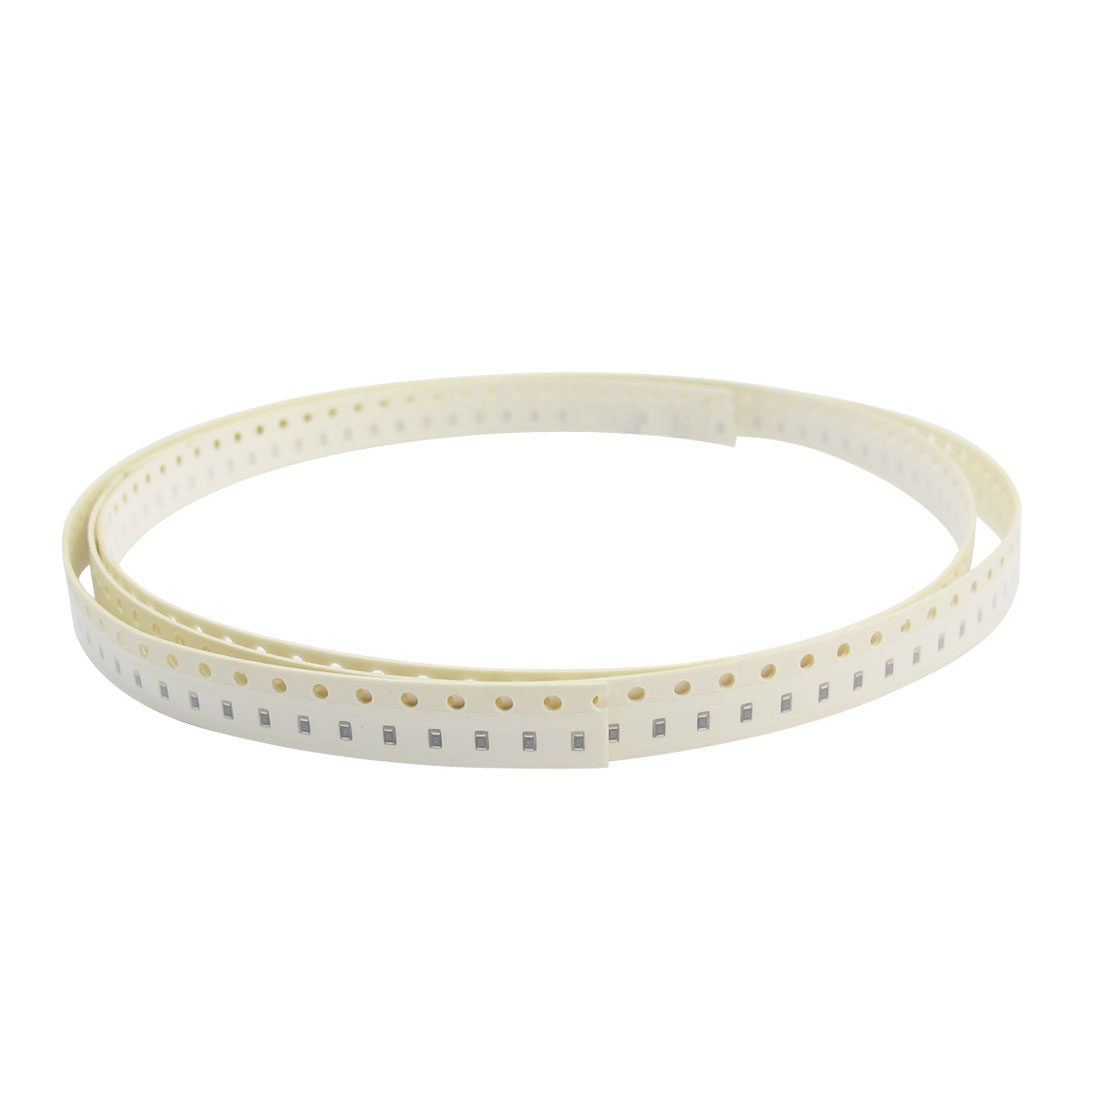 200 Pcs 0603 1608 6.8Ohm Resistance 1/16W Watt 5% Tolerance Surface Mounted SMT SMD Chip Fixed Resistors Strip